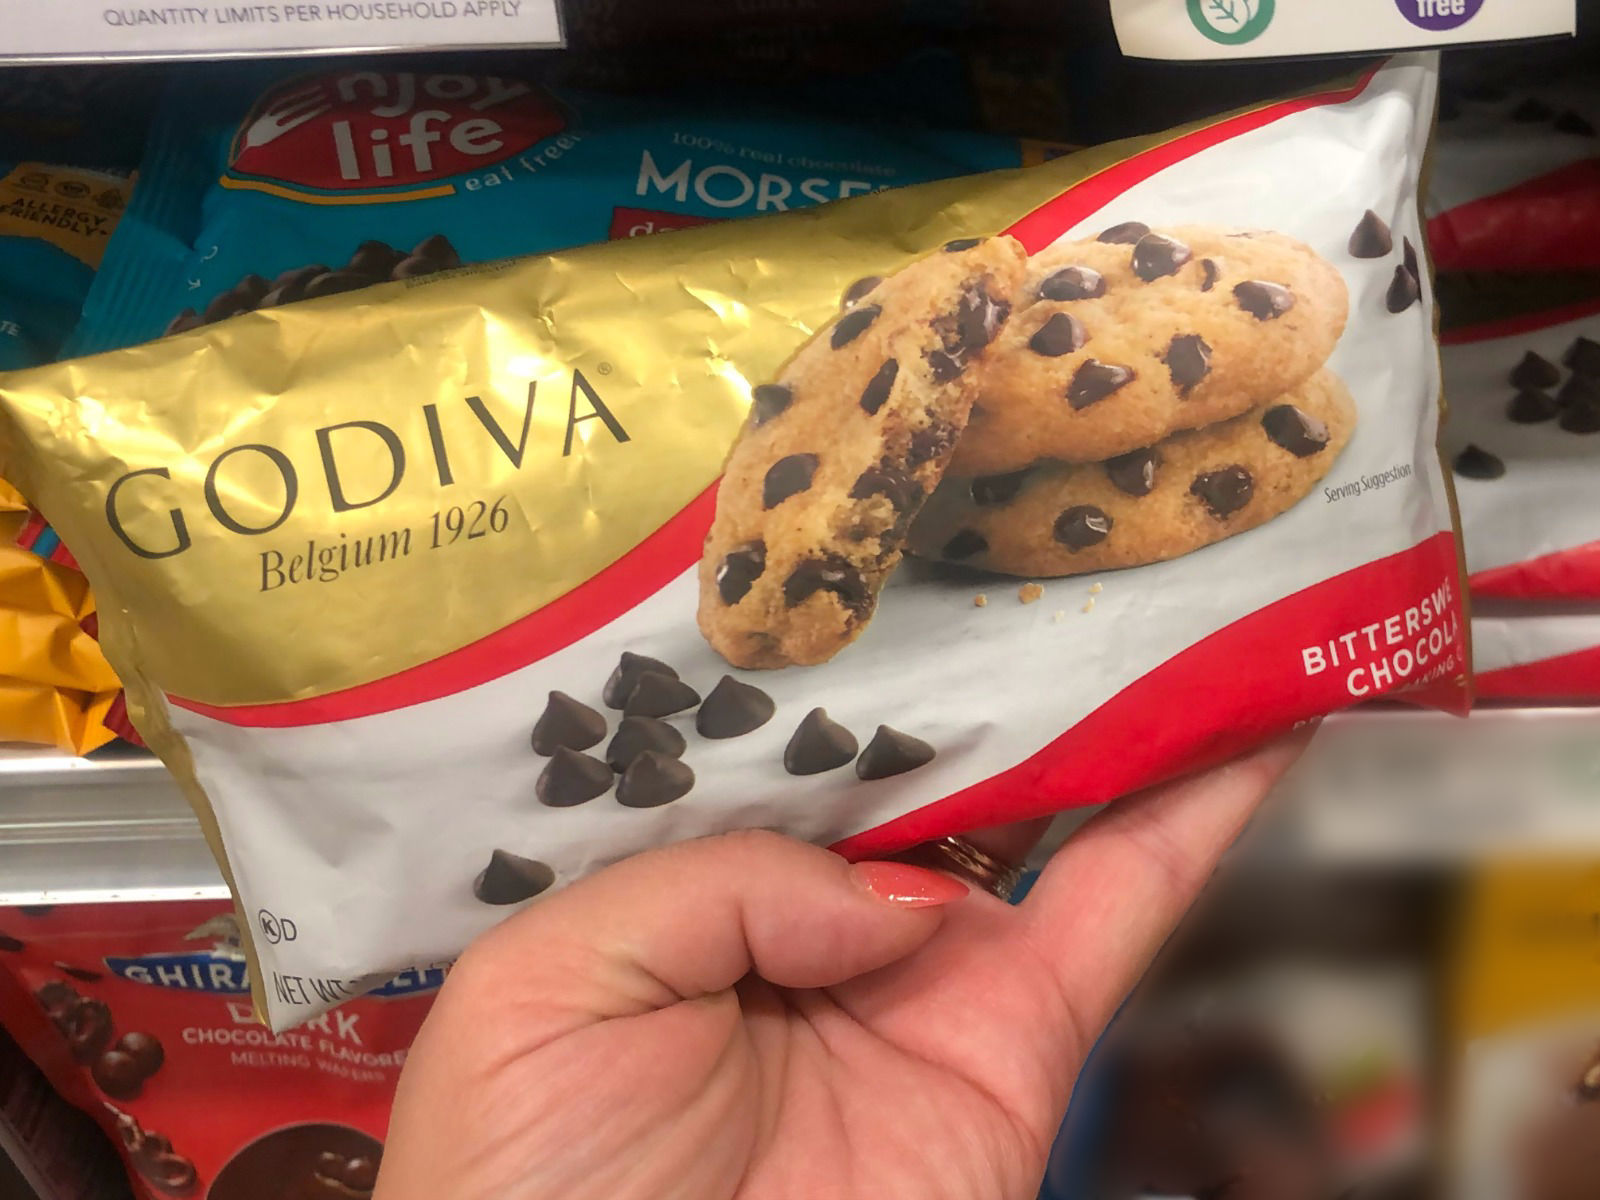 Find New GODIVA Premium Baking Chips At Your Local Publix on I Heart Publix 4